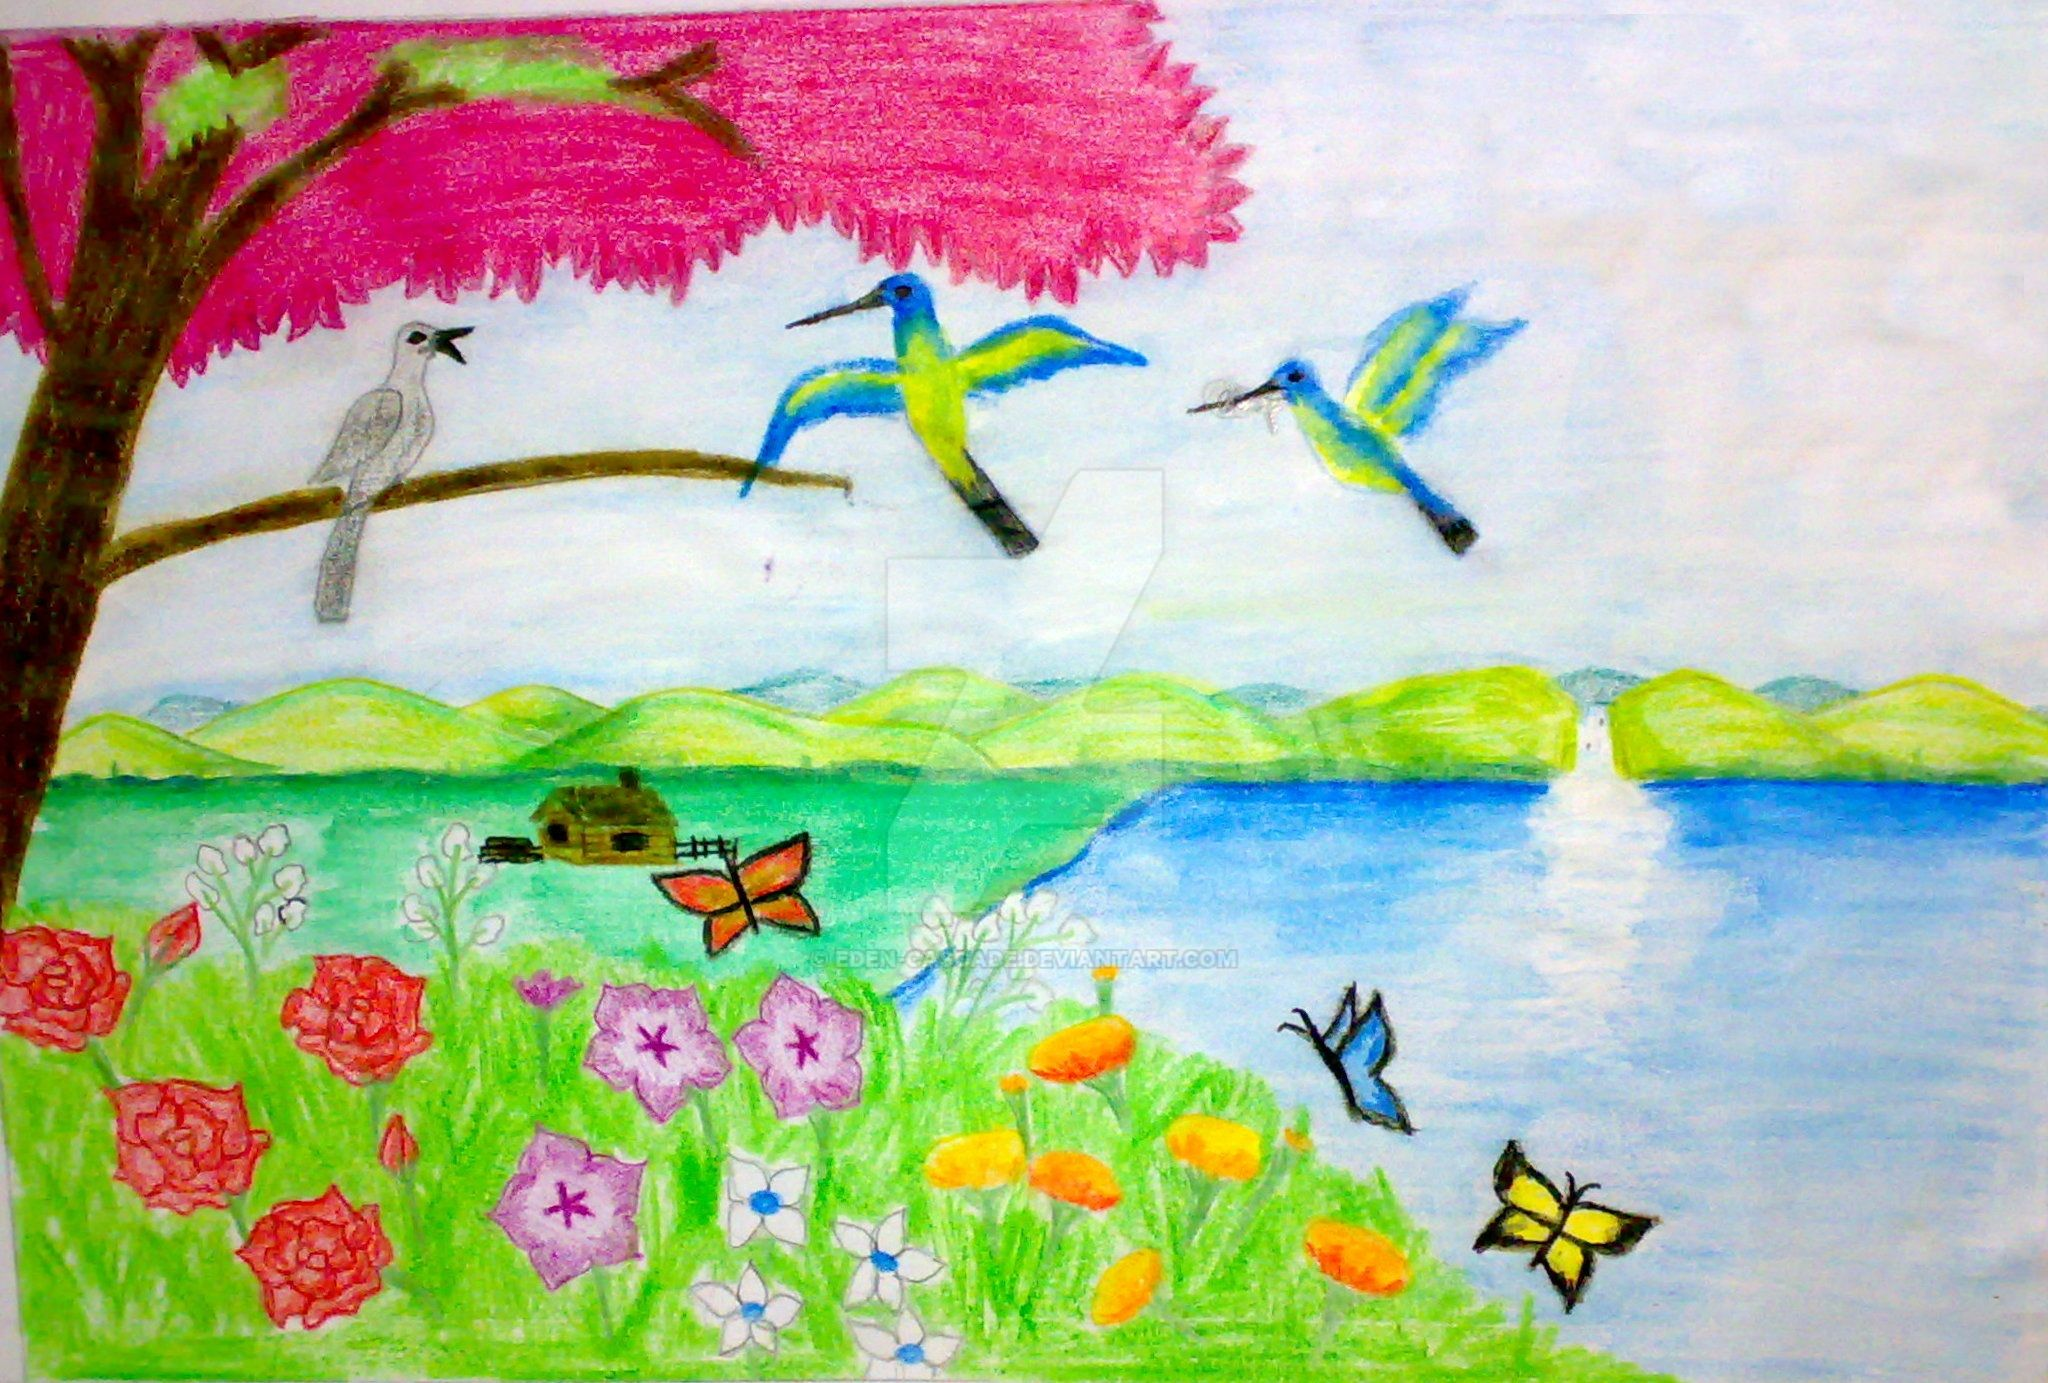 Spring season by eden cascade on deviantart for Easy spring pictures to draw